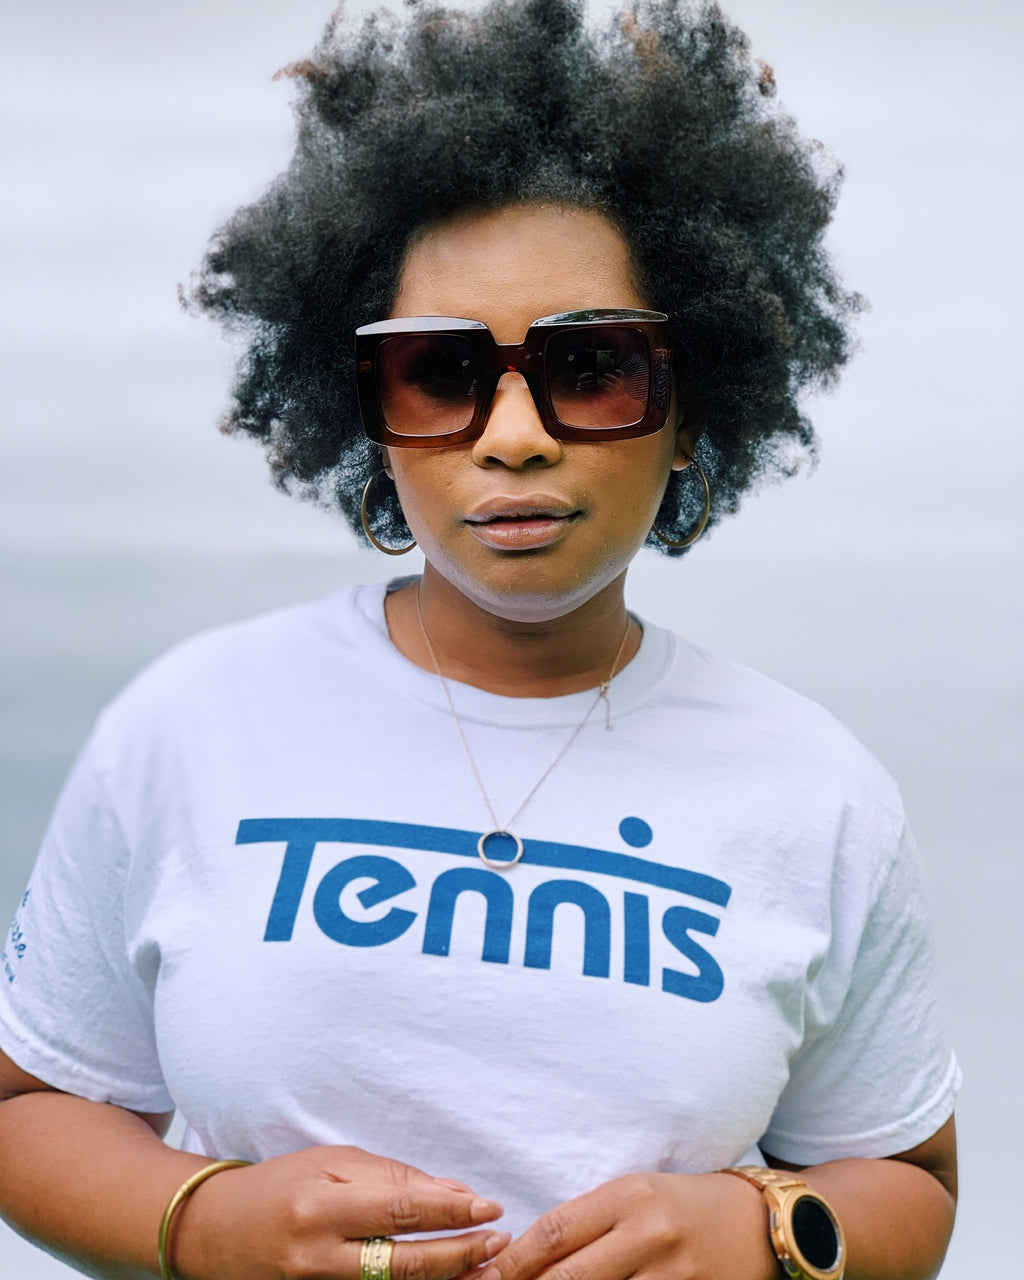 Tennis Tee (UNISEX)- White w Navy